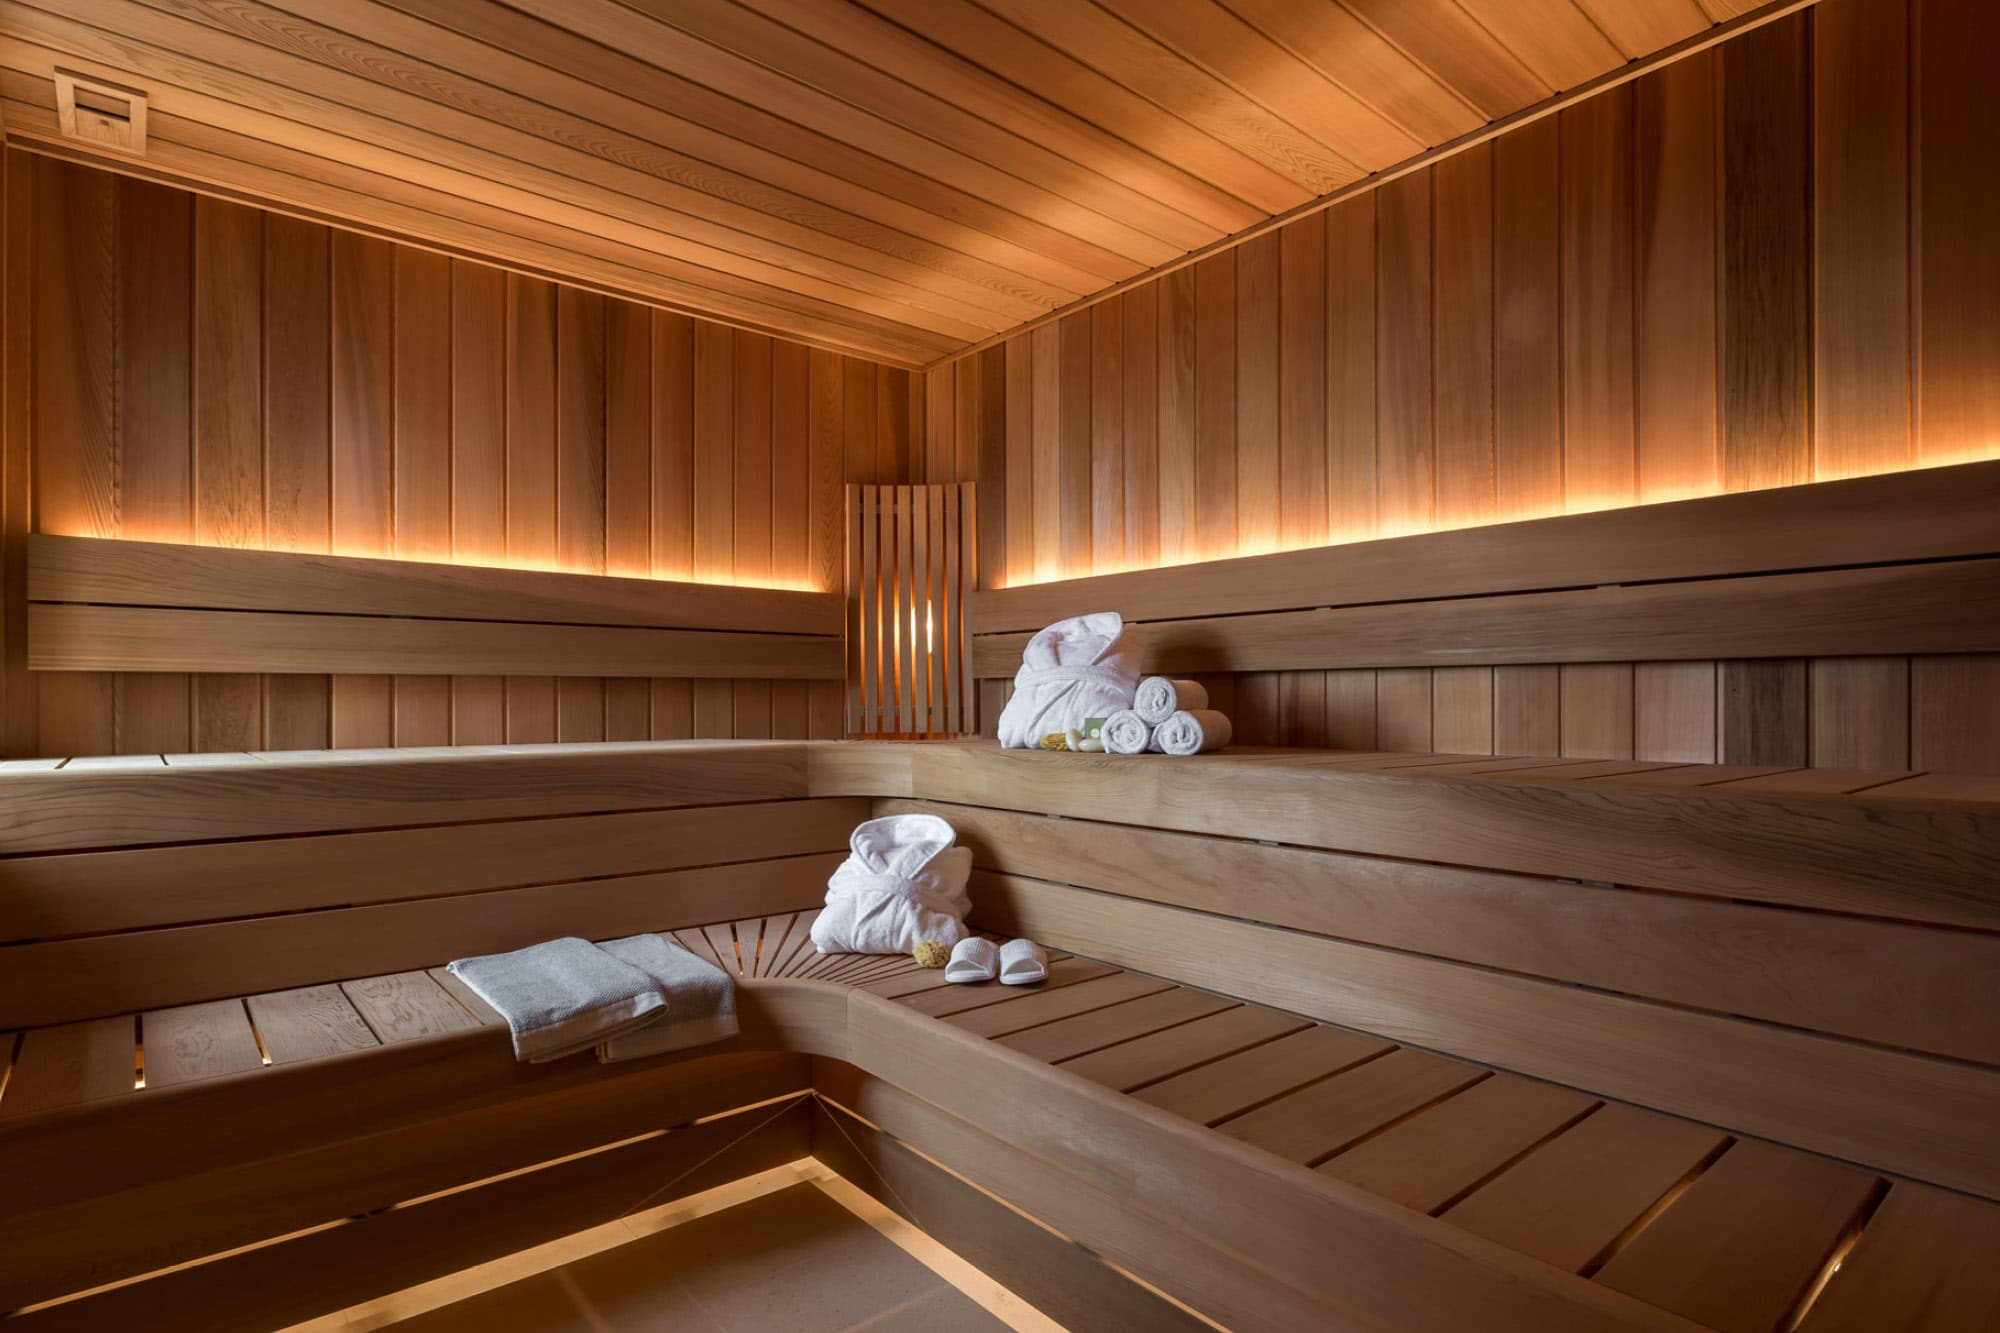 The Swedish sauna at Harford Manor